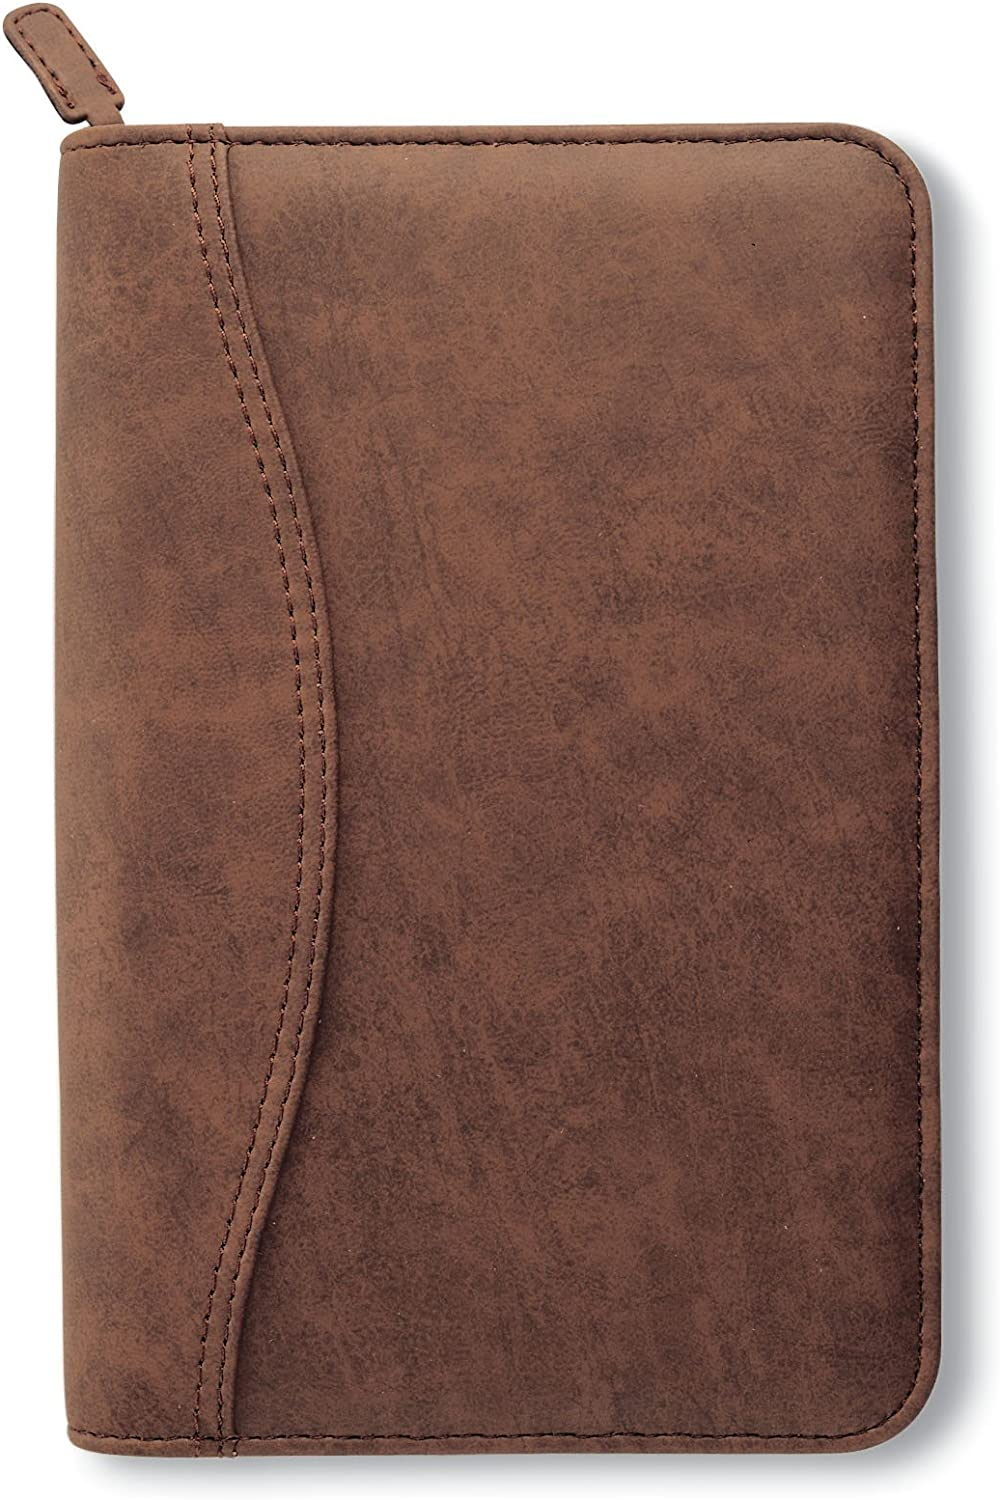 Day-Timer Simulated Distressed Leather Organizer Starter Set, Zip Closure, 8.5 x 5.5 Inches, Brown (D43074)